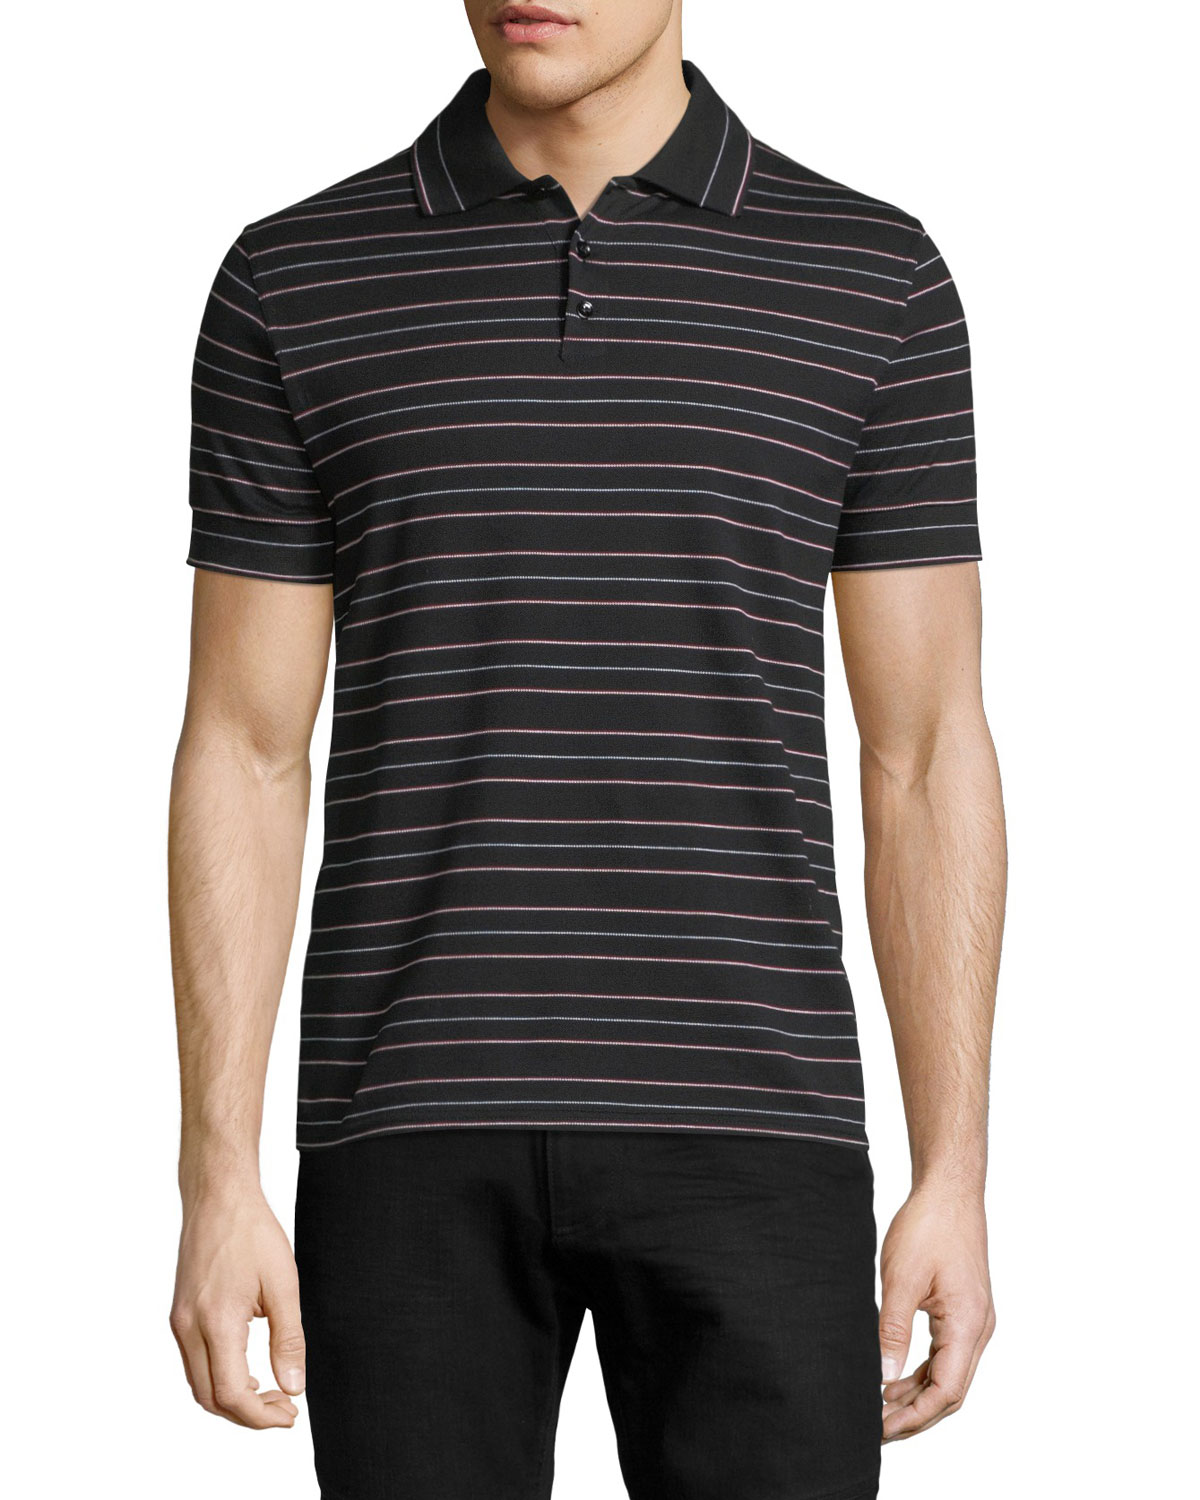 8492fbcea7 Saint Laurent Striped Polo Shirt